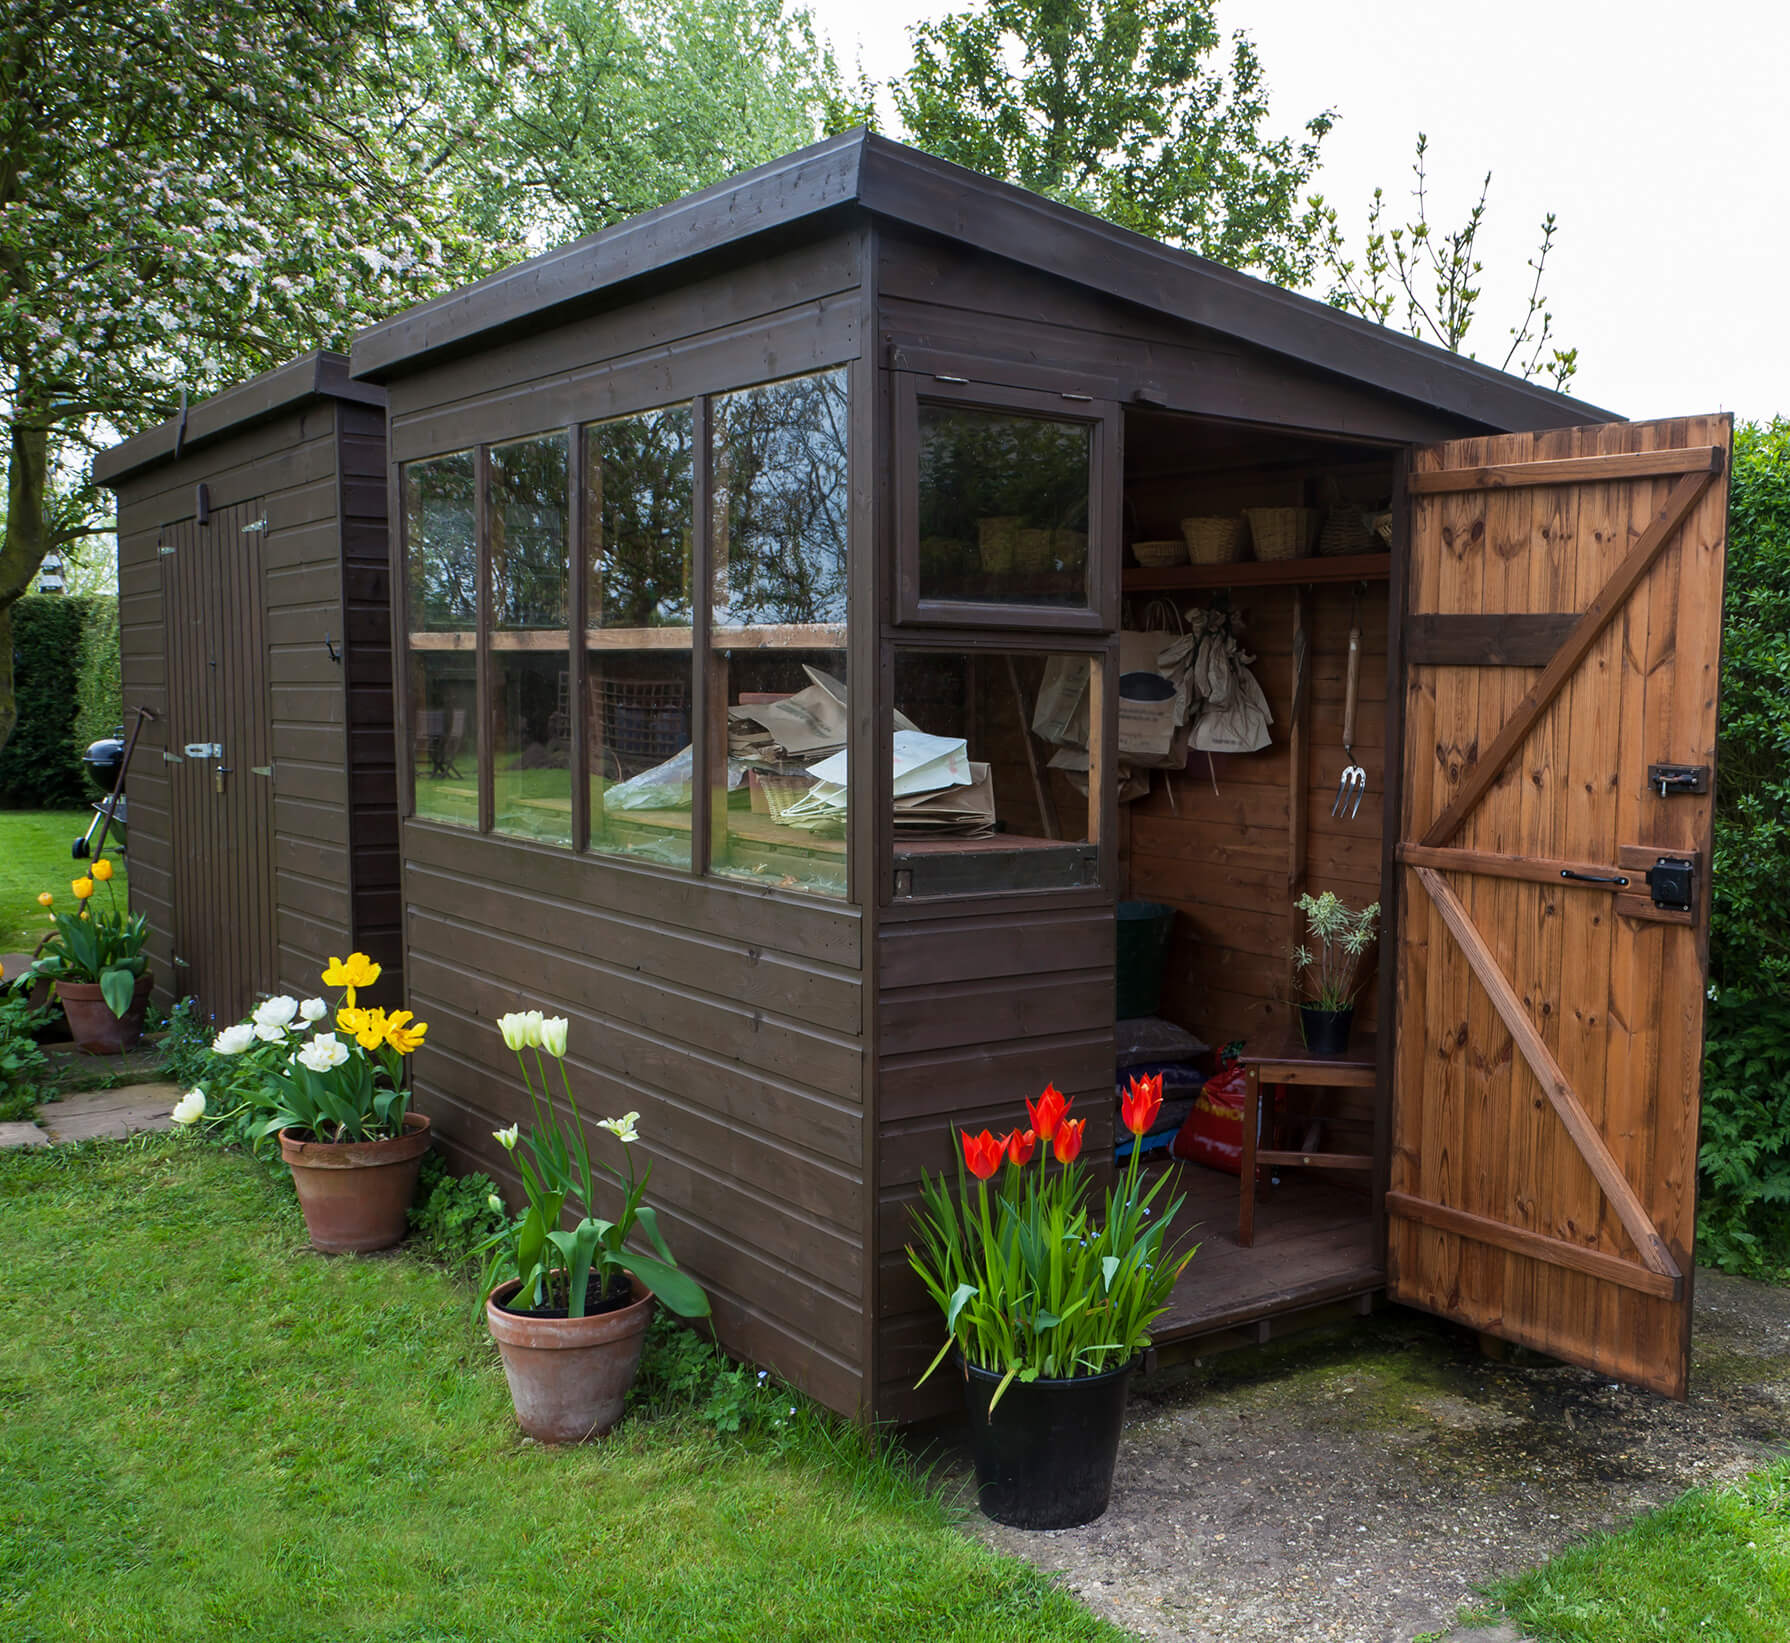 Garden shed exterior with door open, tools, flowers, and plant p